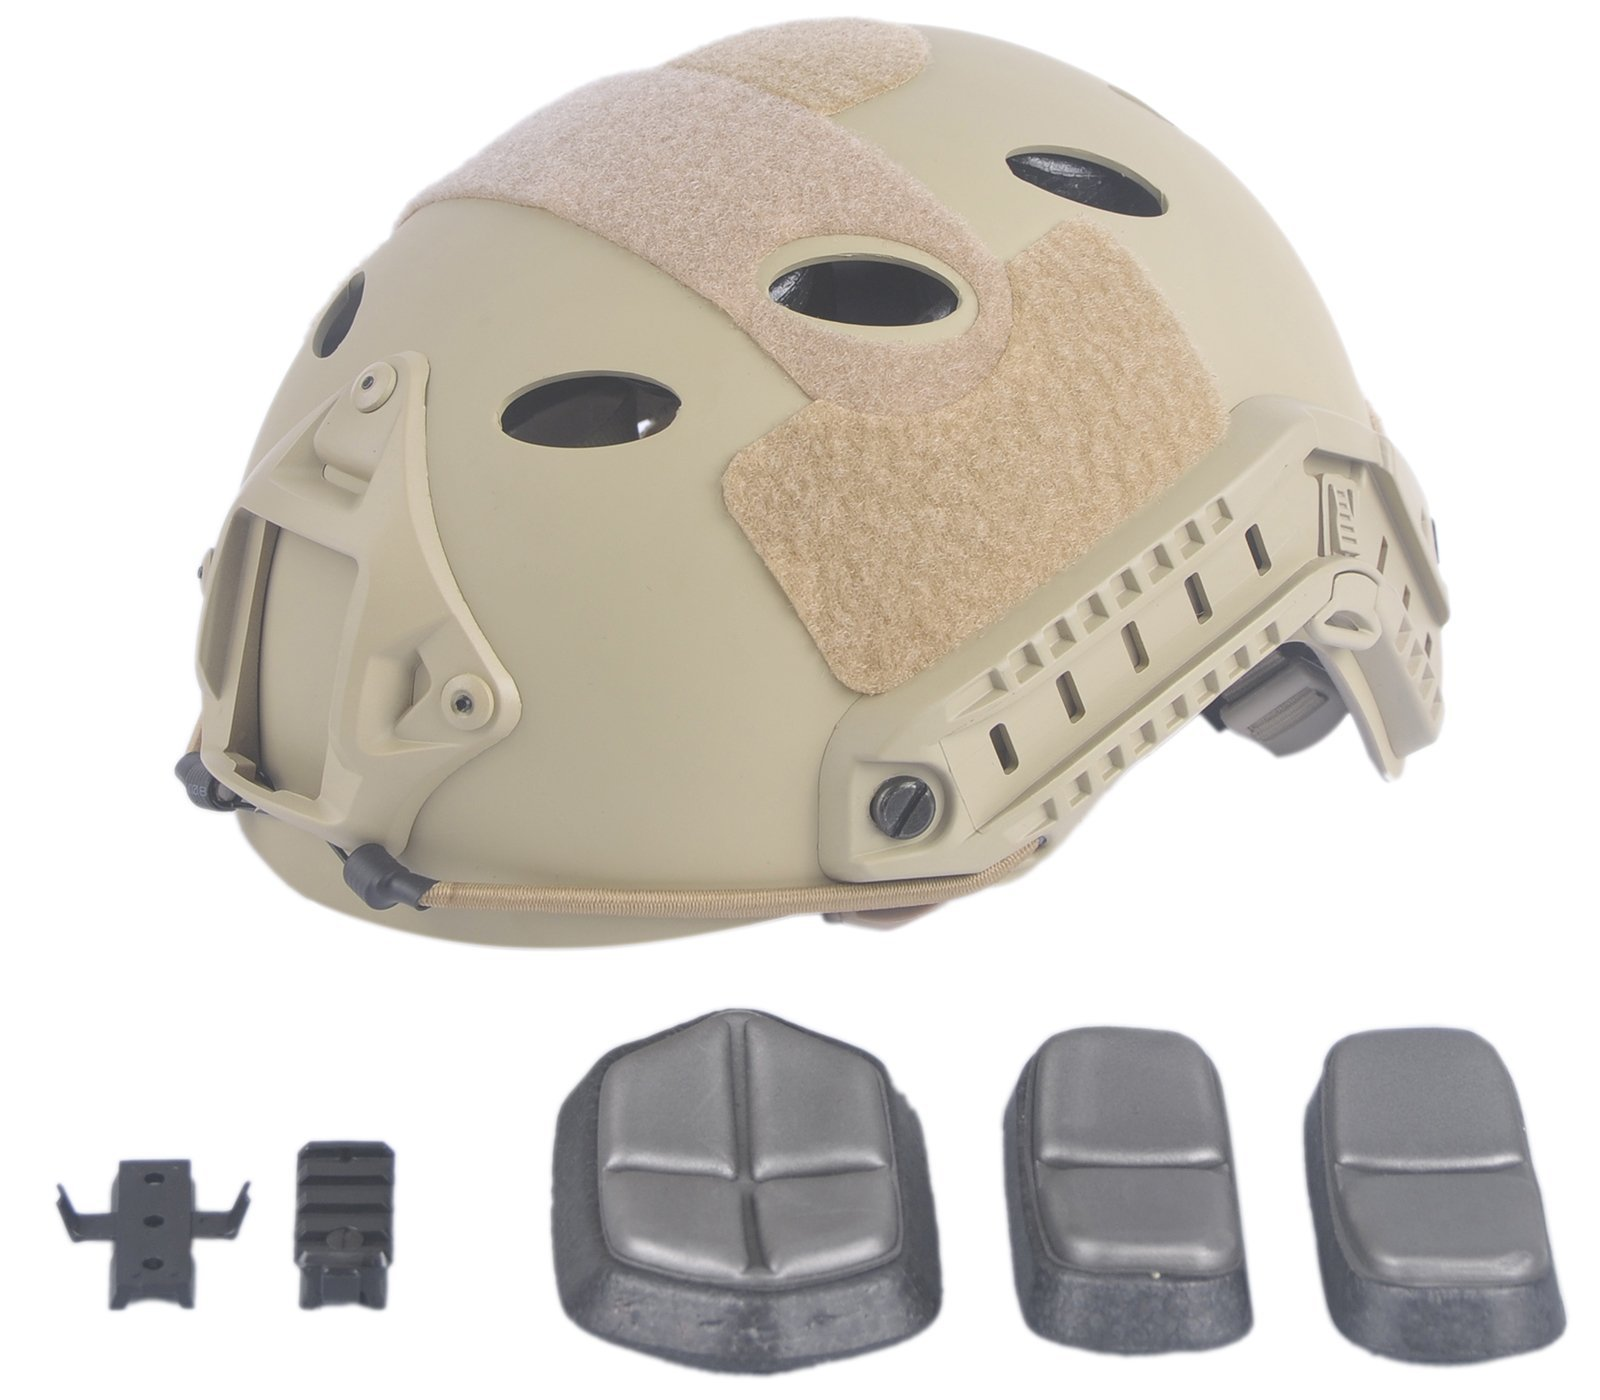 LOOGU Fast PJ Base Jump Military Helmet with 12-in-1 Headwear(SD) by LOOGU